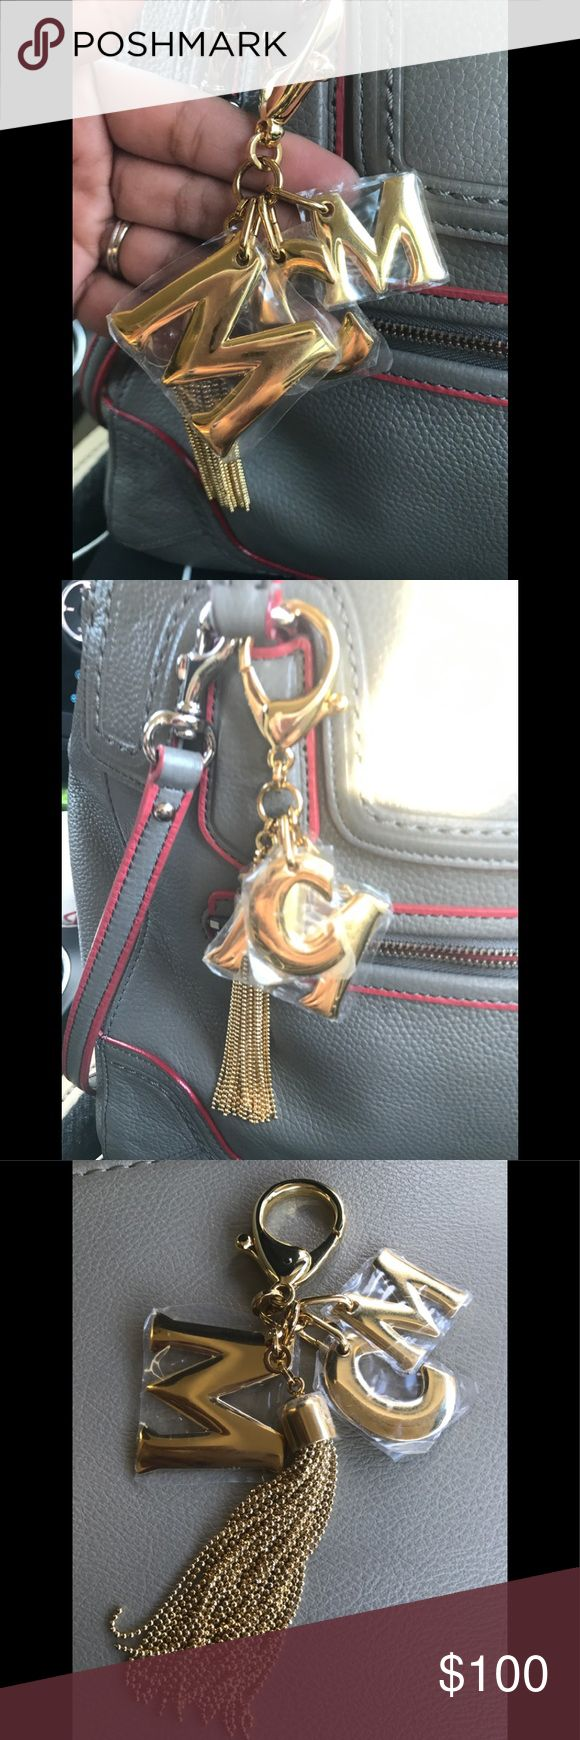 MCM Key Chain/ Charm Authentic MCM Bag Charm/ Key Chain. 💥Price is Firm💥 MCM Accessories Key & Card Holders